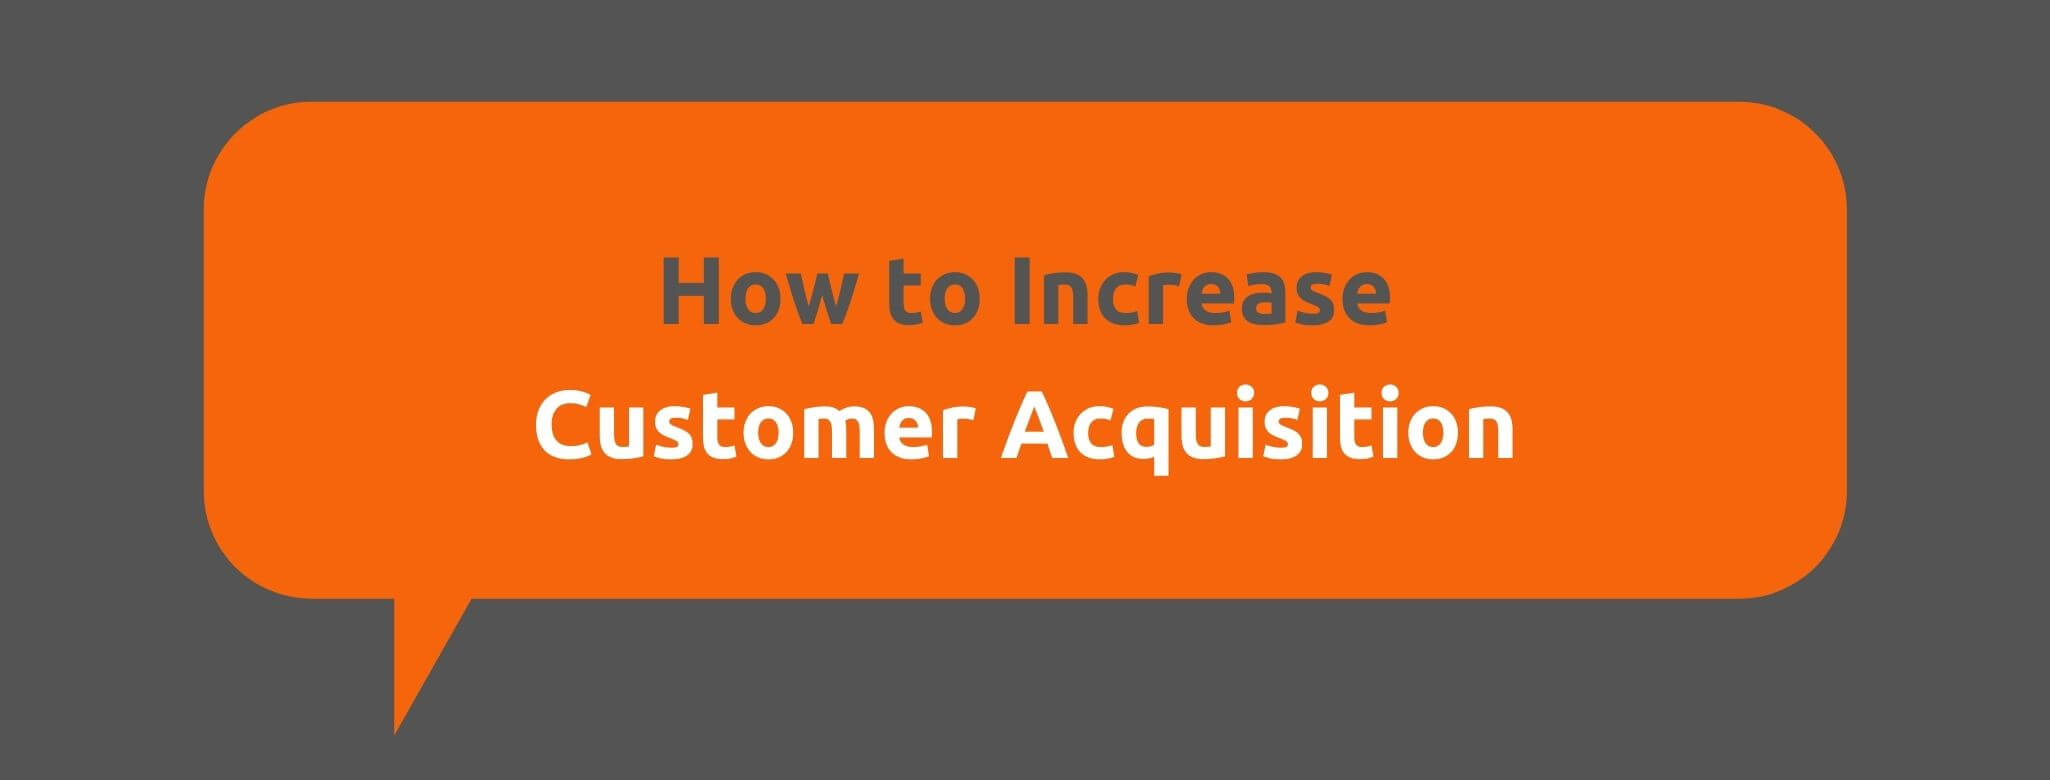 How to Increase Customer Acquisition - Customer Acquisition vs. Customer Retention - Replyco Helpdesk Software for eCommerce